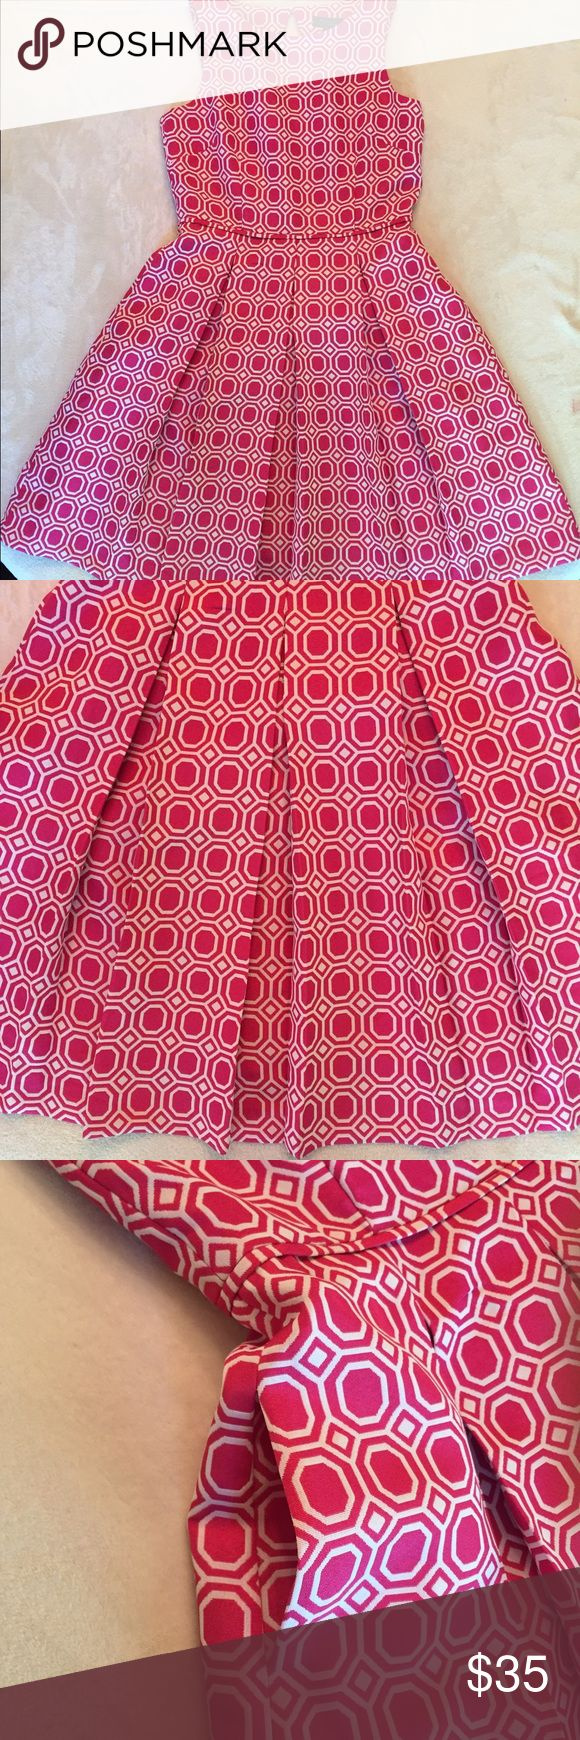 Vintage Style Geometric Pleated A Line Pink Dress This is a beautiful preppy vintage style dress with a cutout back, deep pleats, and an adorable pin-up girl feel. The thick fabric is breathable, but gives structure to this lovely piece. The zipper works well, the colors are vibrant, and this is in great condition overall! The only flaw is a sharpie mark through the tag that does NOT bleed through to the back. 🎀 keywords: prep, sorority recruitment, circle skirt, trend, retro, cute…